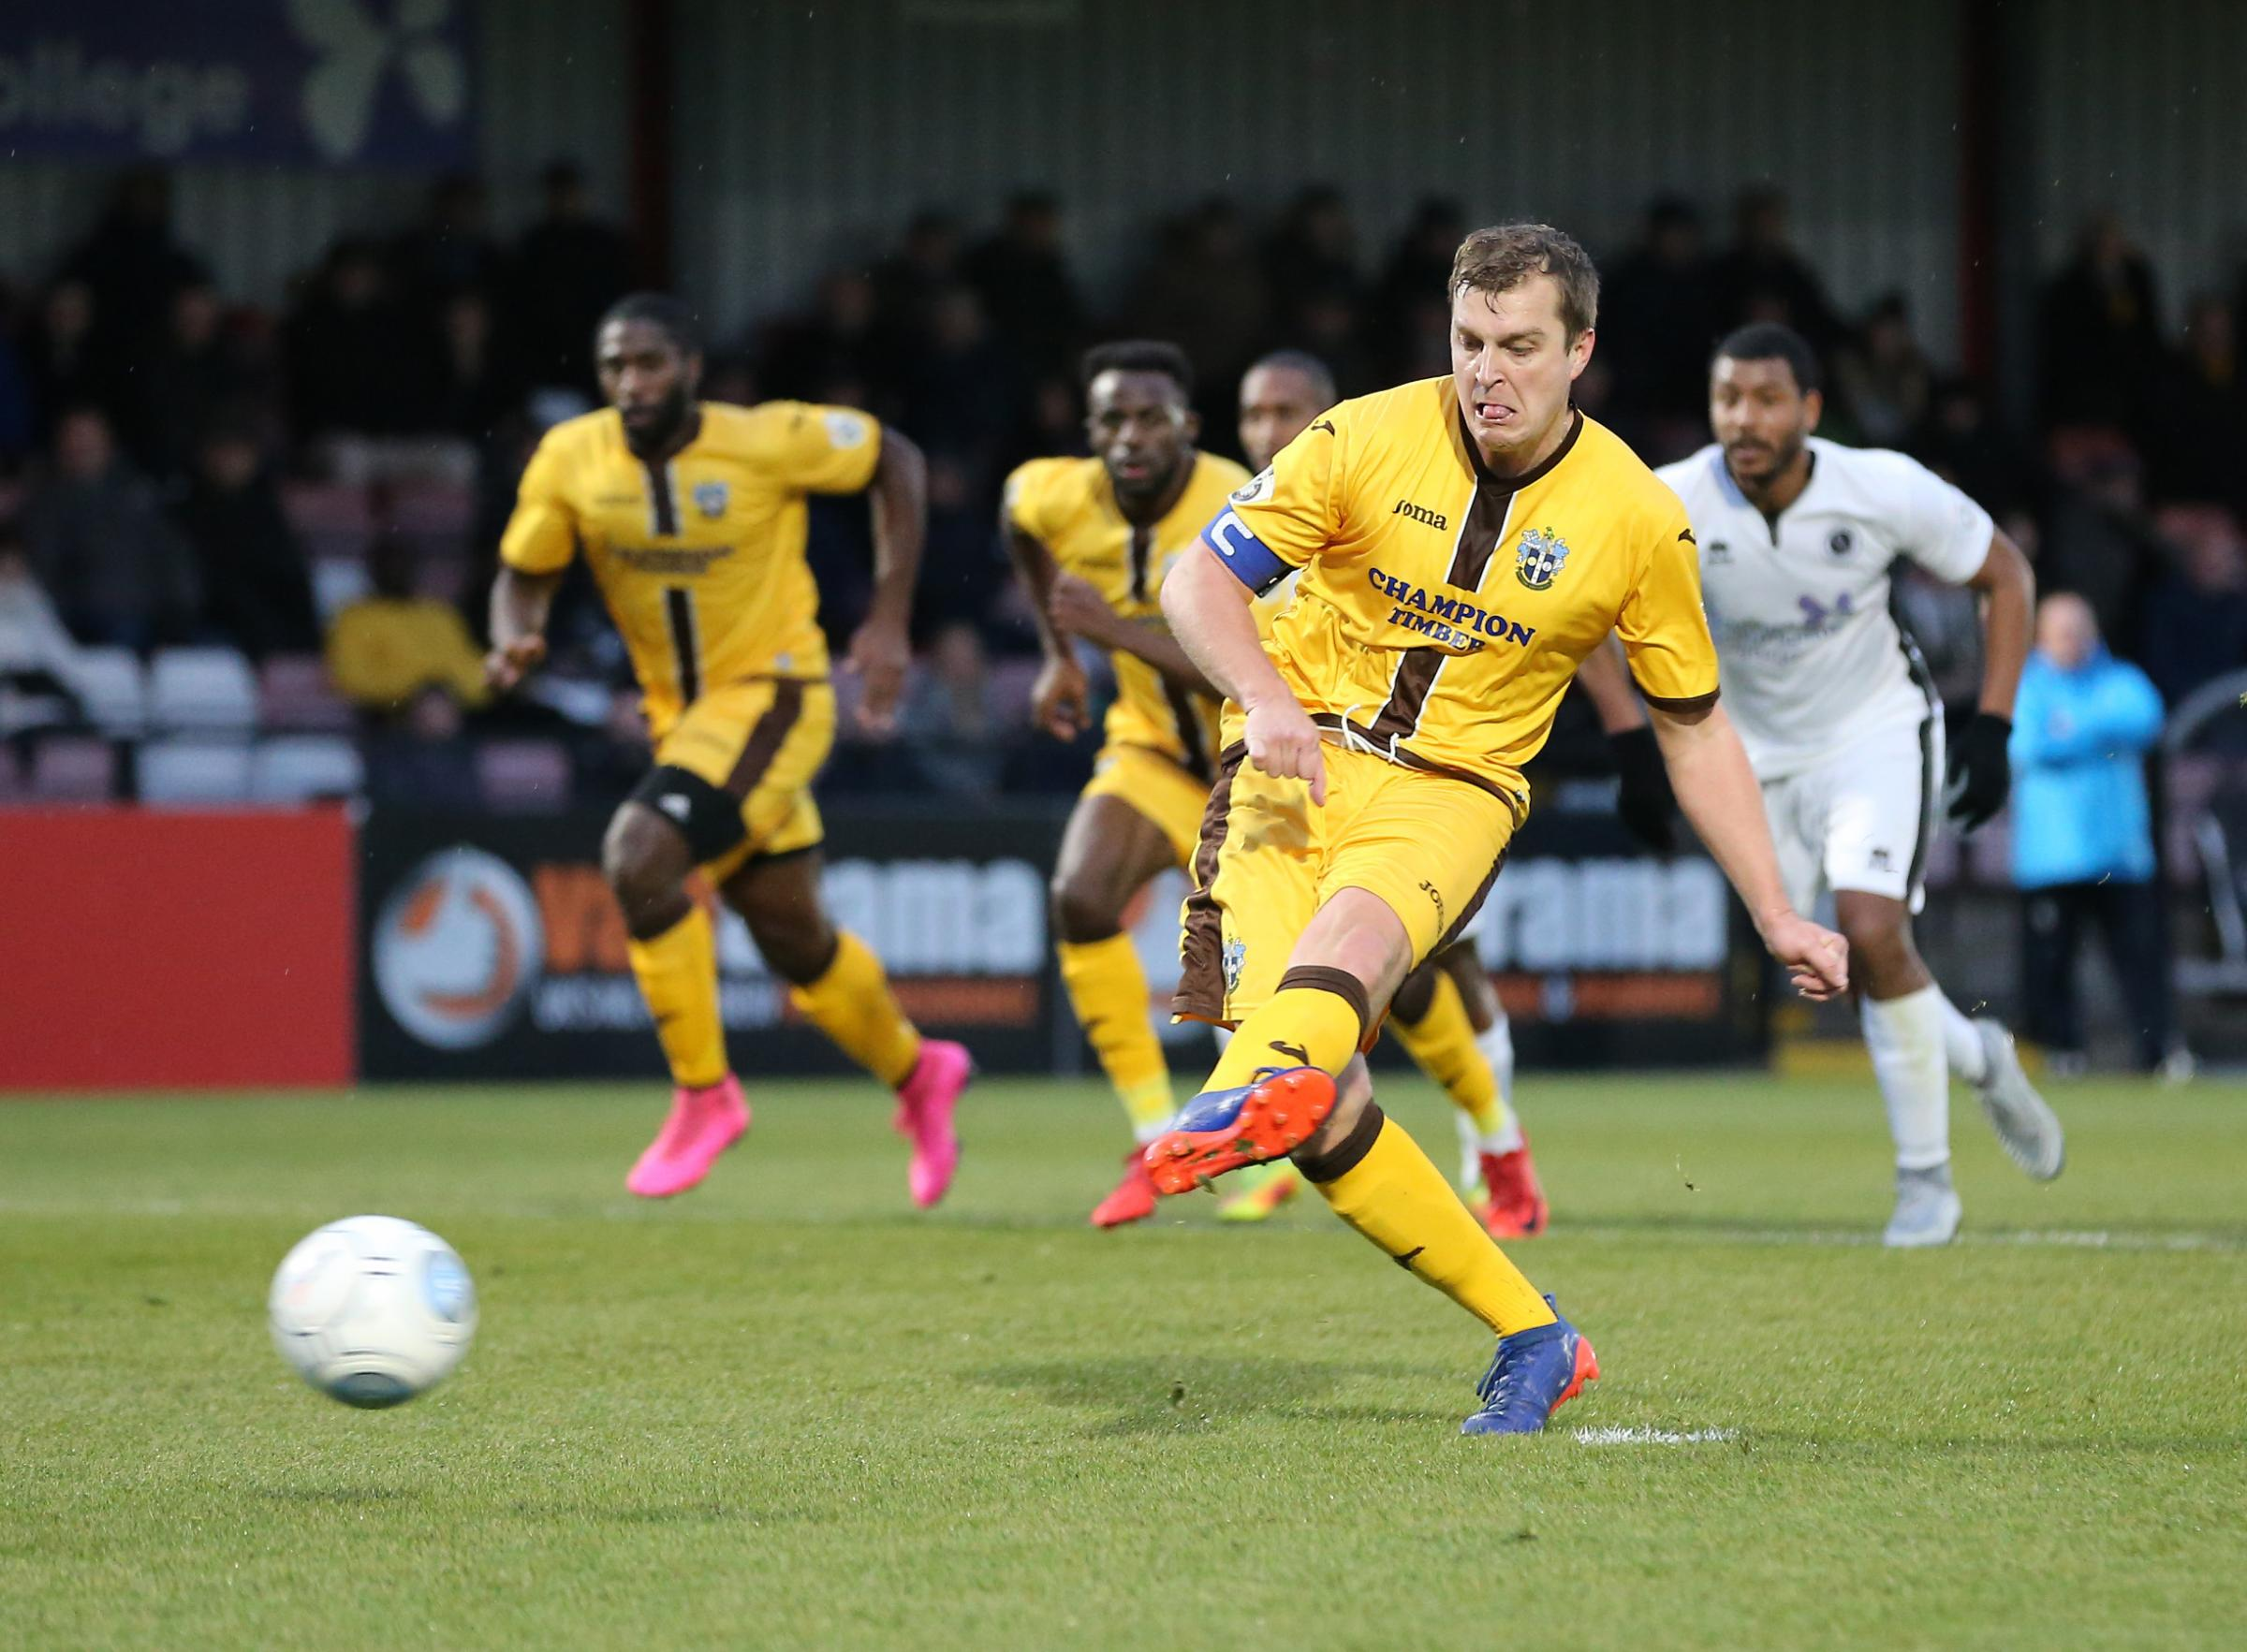 Sutton United captain scored from the penalty spot in the 1-1 draw with Boreham Wood on New Year's Day. Picture: Paul Loughlin